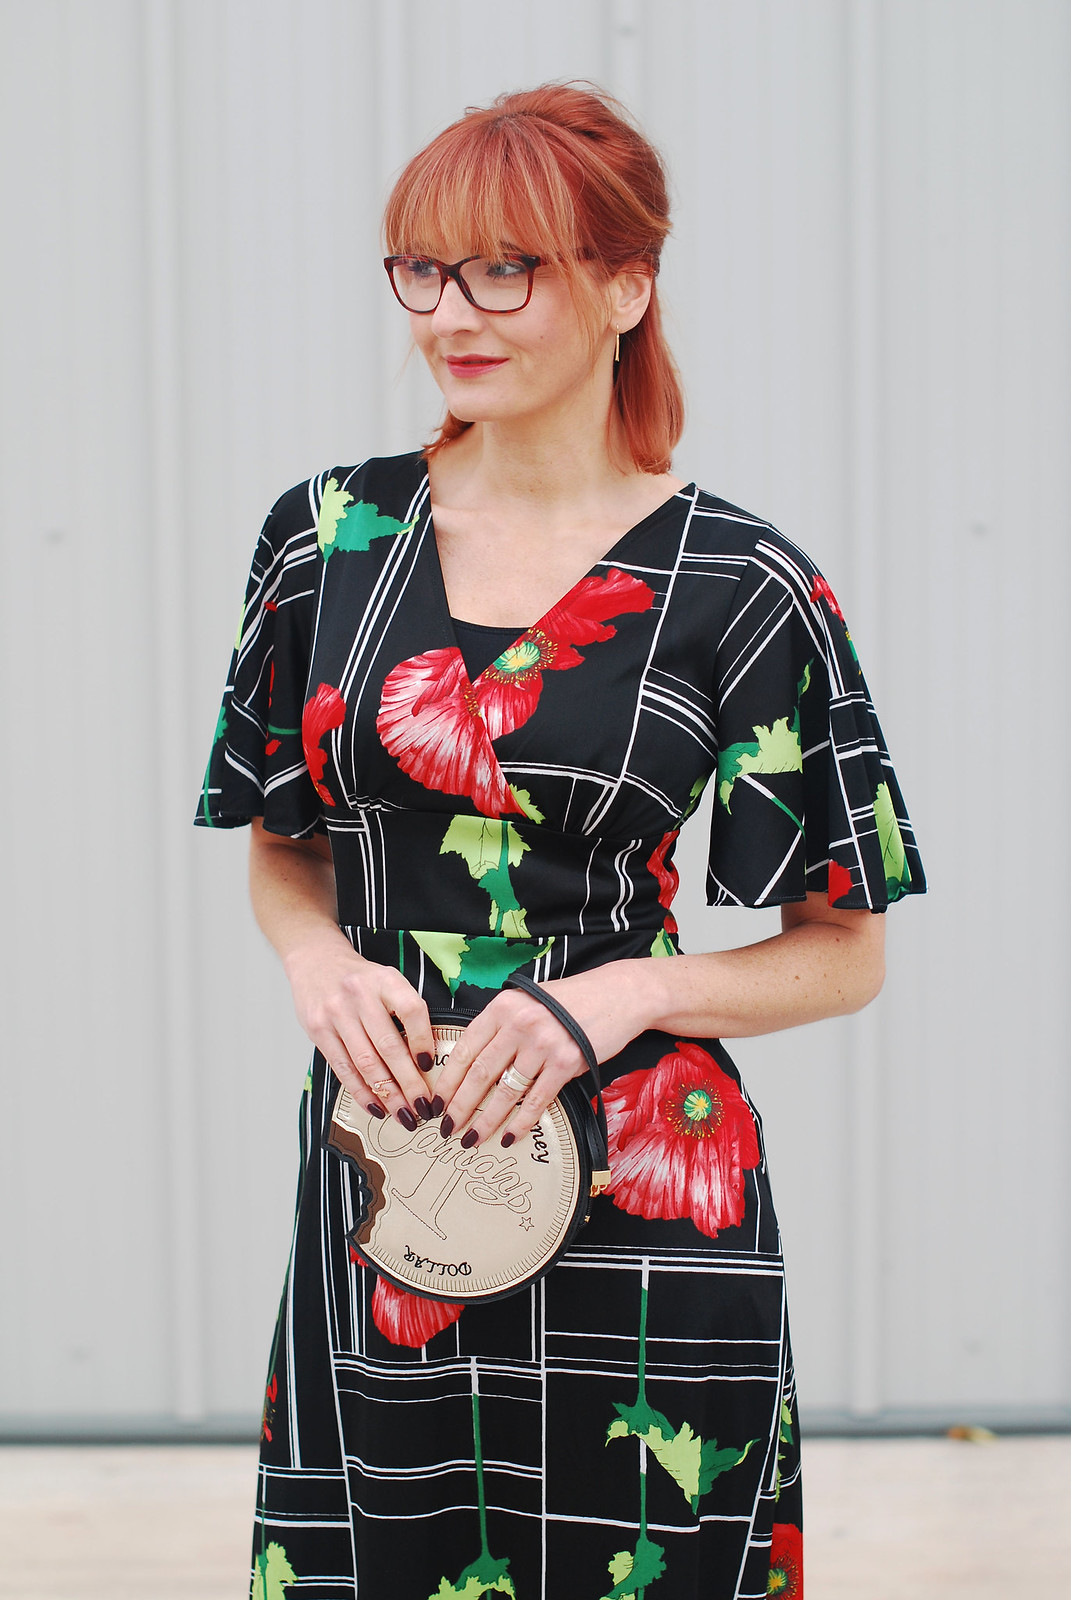 Cocktail dress code: A 1970s/80s vintage poppy print dress over flared cropped trousers | Not Dressed As Lamb, over 40 style